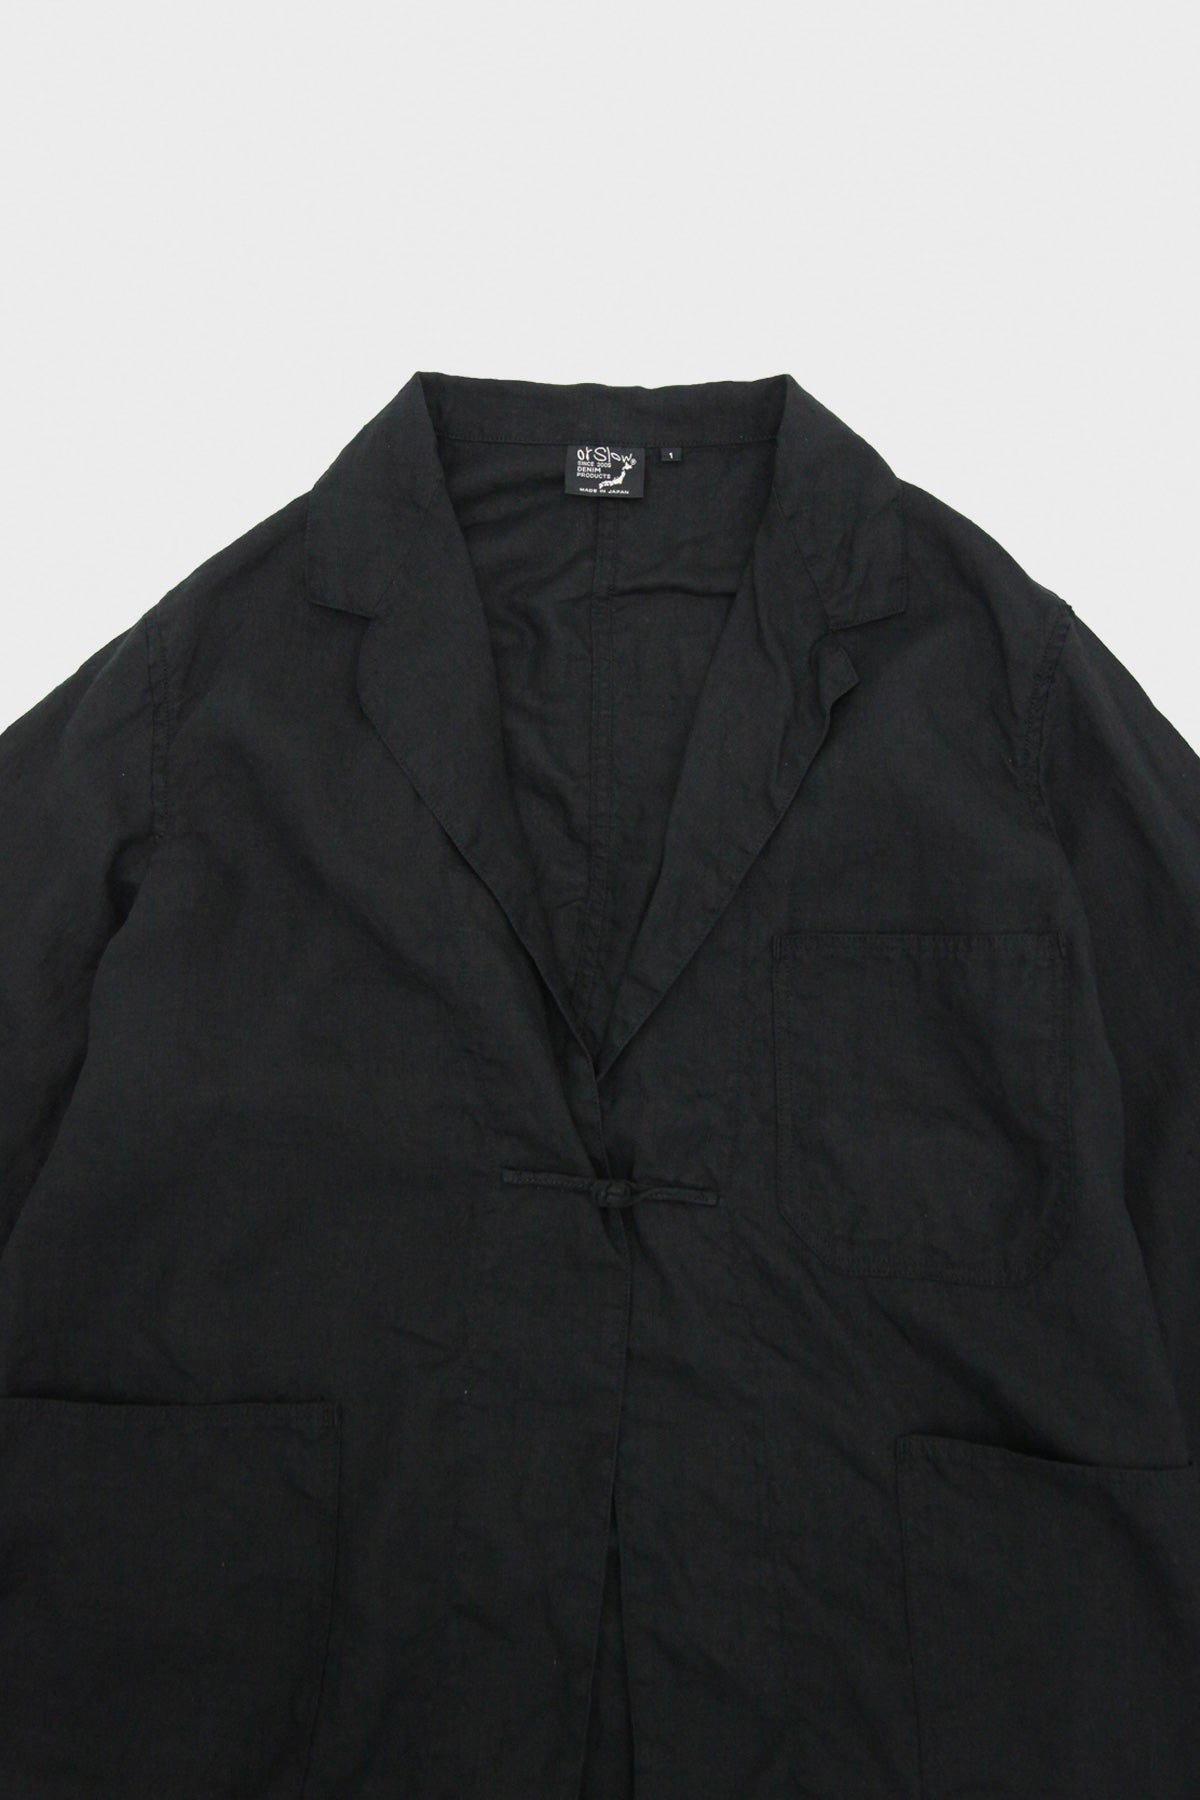 orSlow - Frog Button Linen Jacket - Indigo - Canoe Club